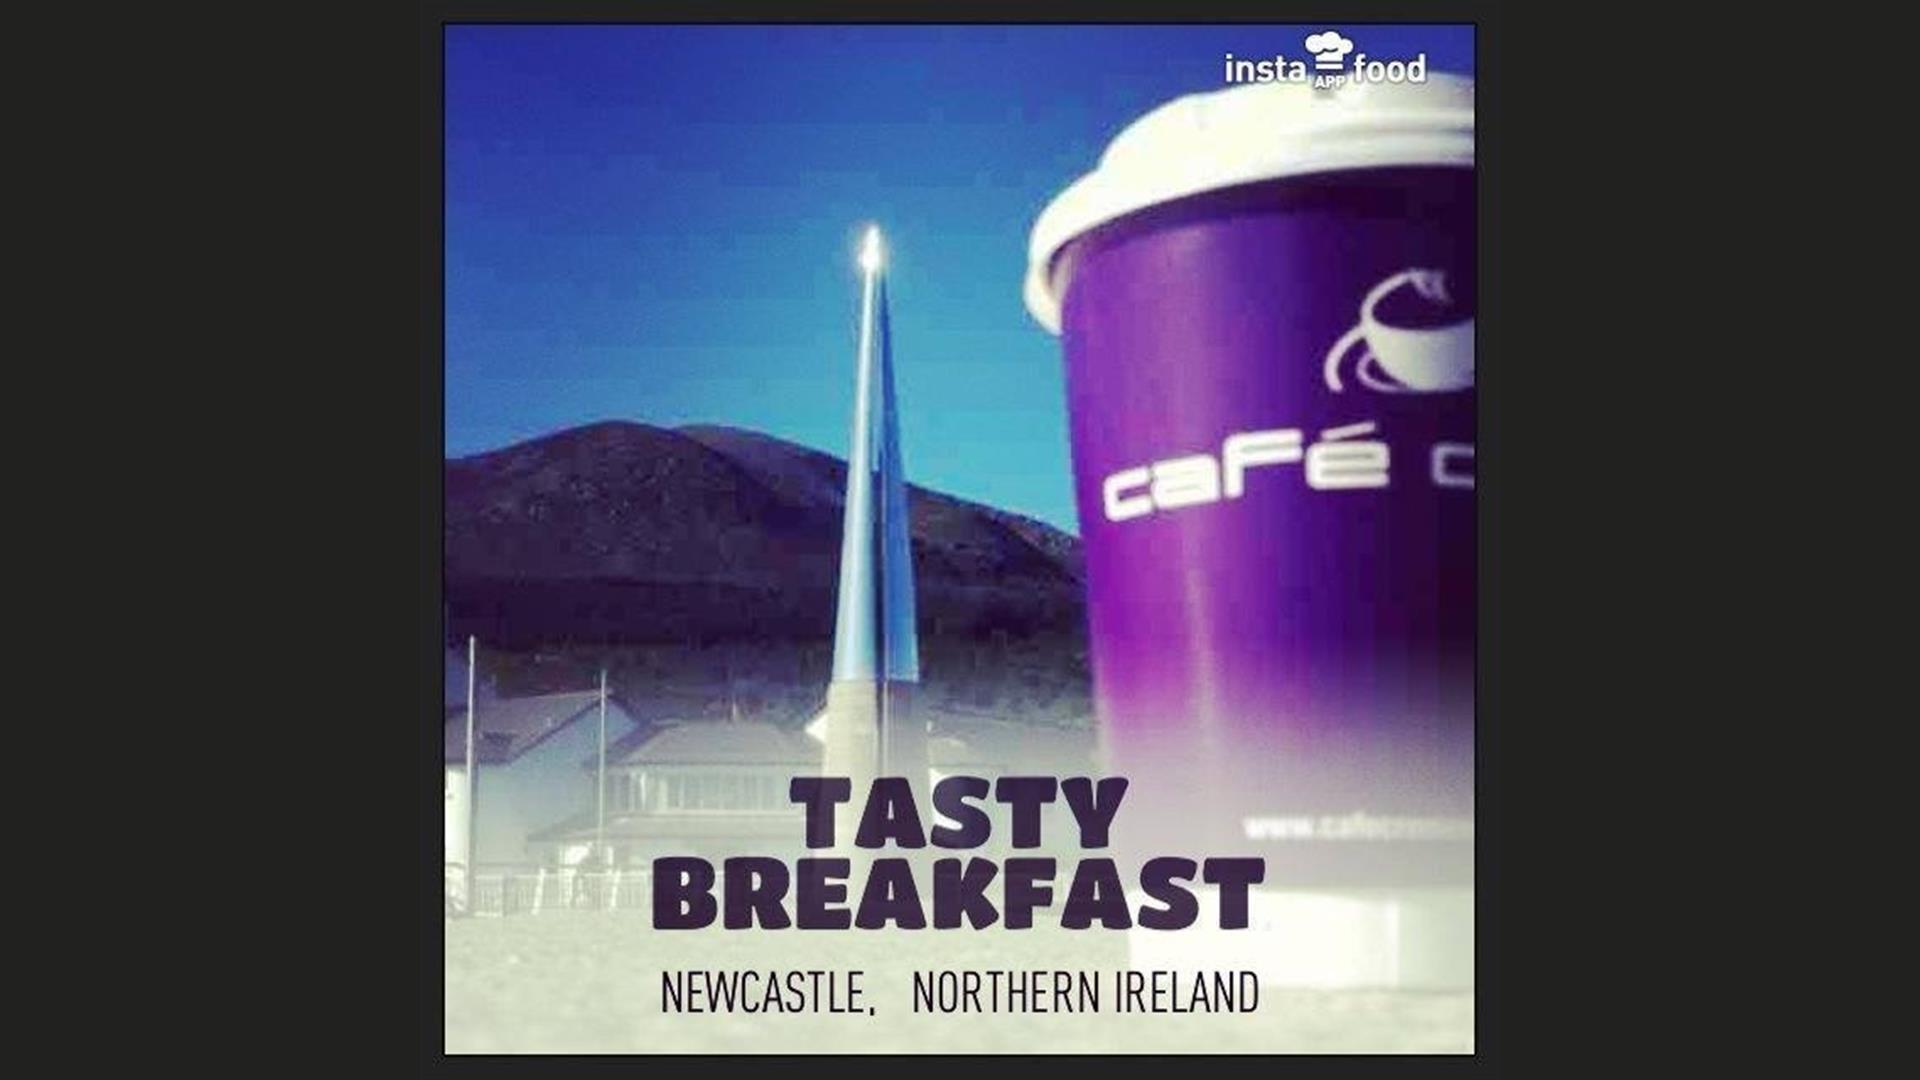 Cafe Creme - Newcastle